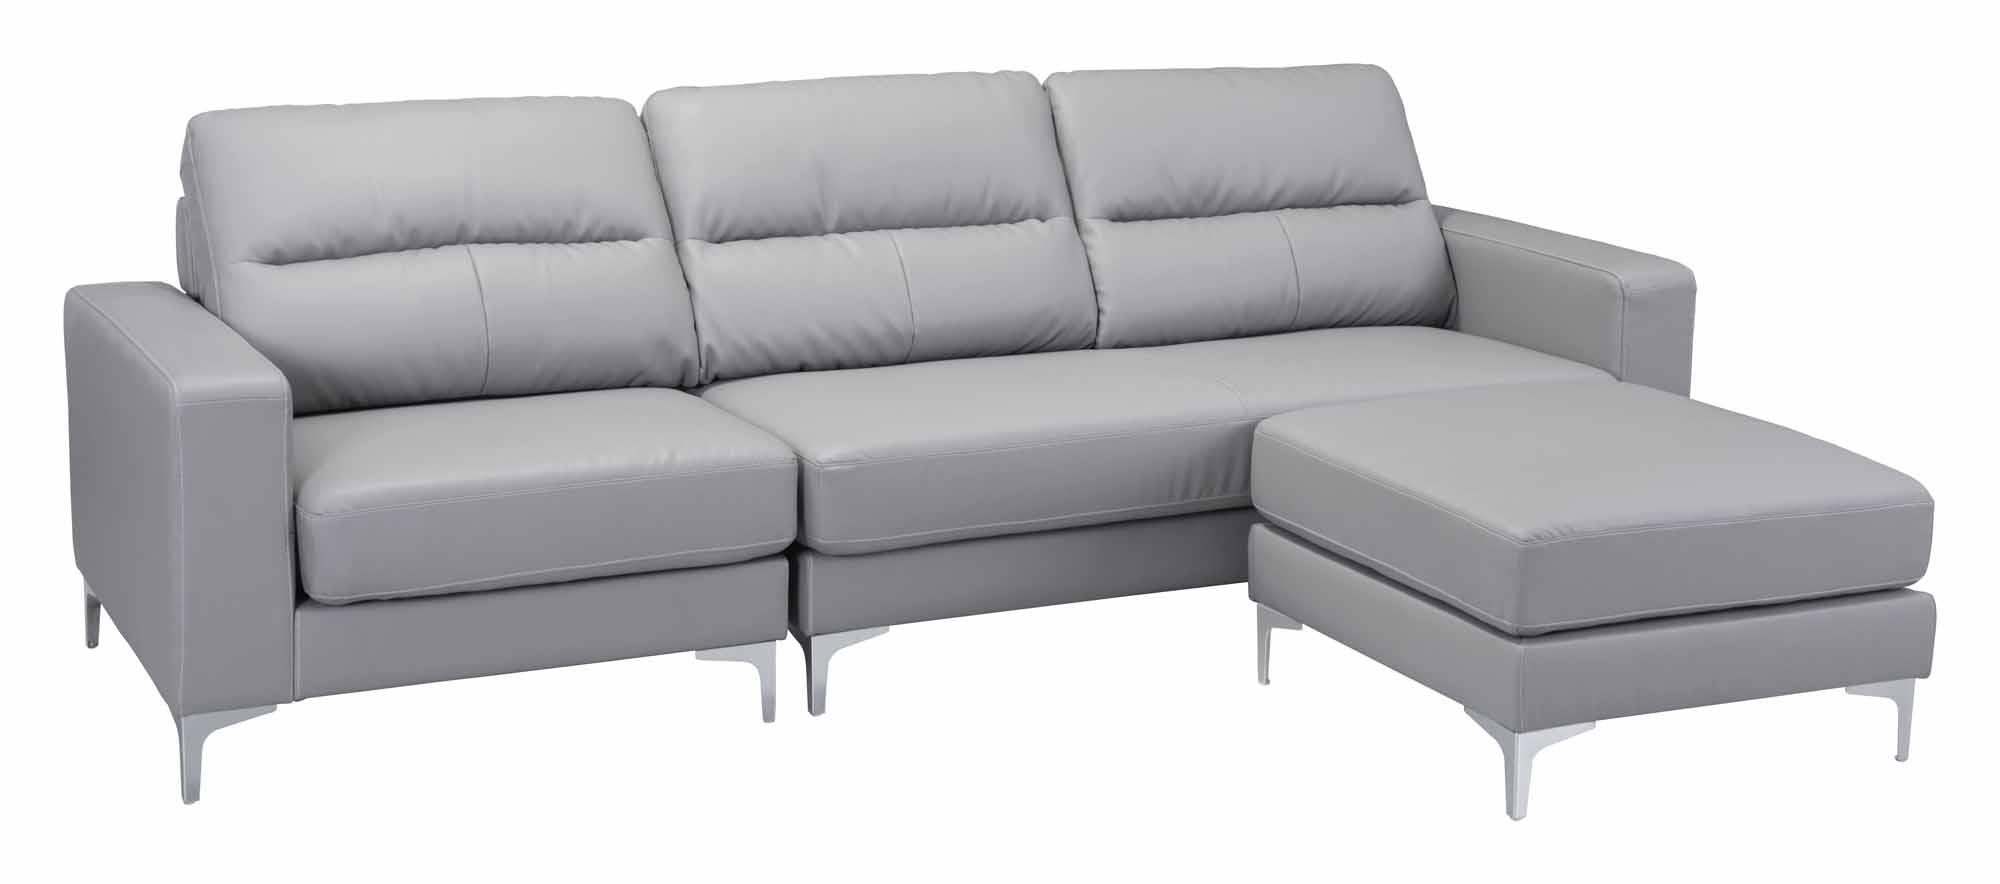 Marvelous Versa Sectional Gray By Zuo Modern Andrewgaddart Wooden Chair Designs For Living Room Andrewgaddartcom